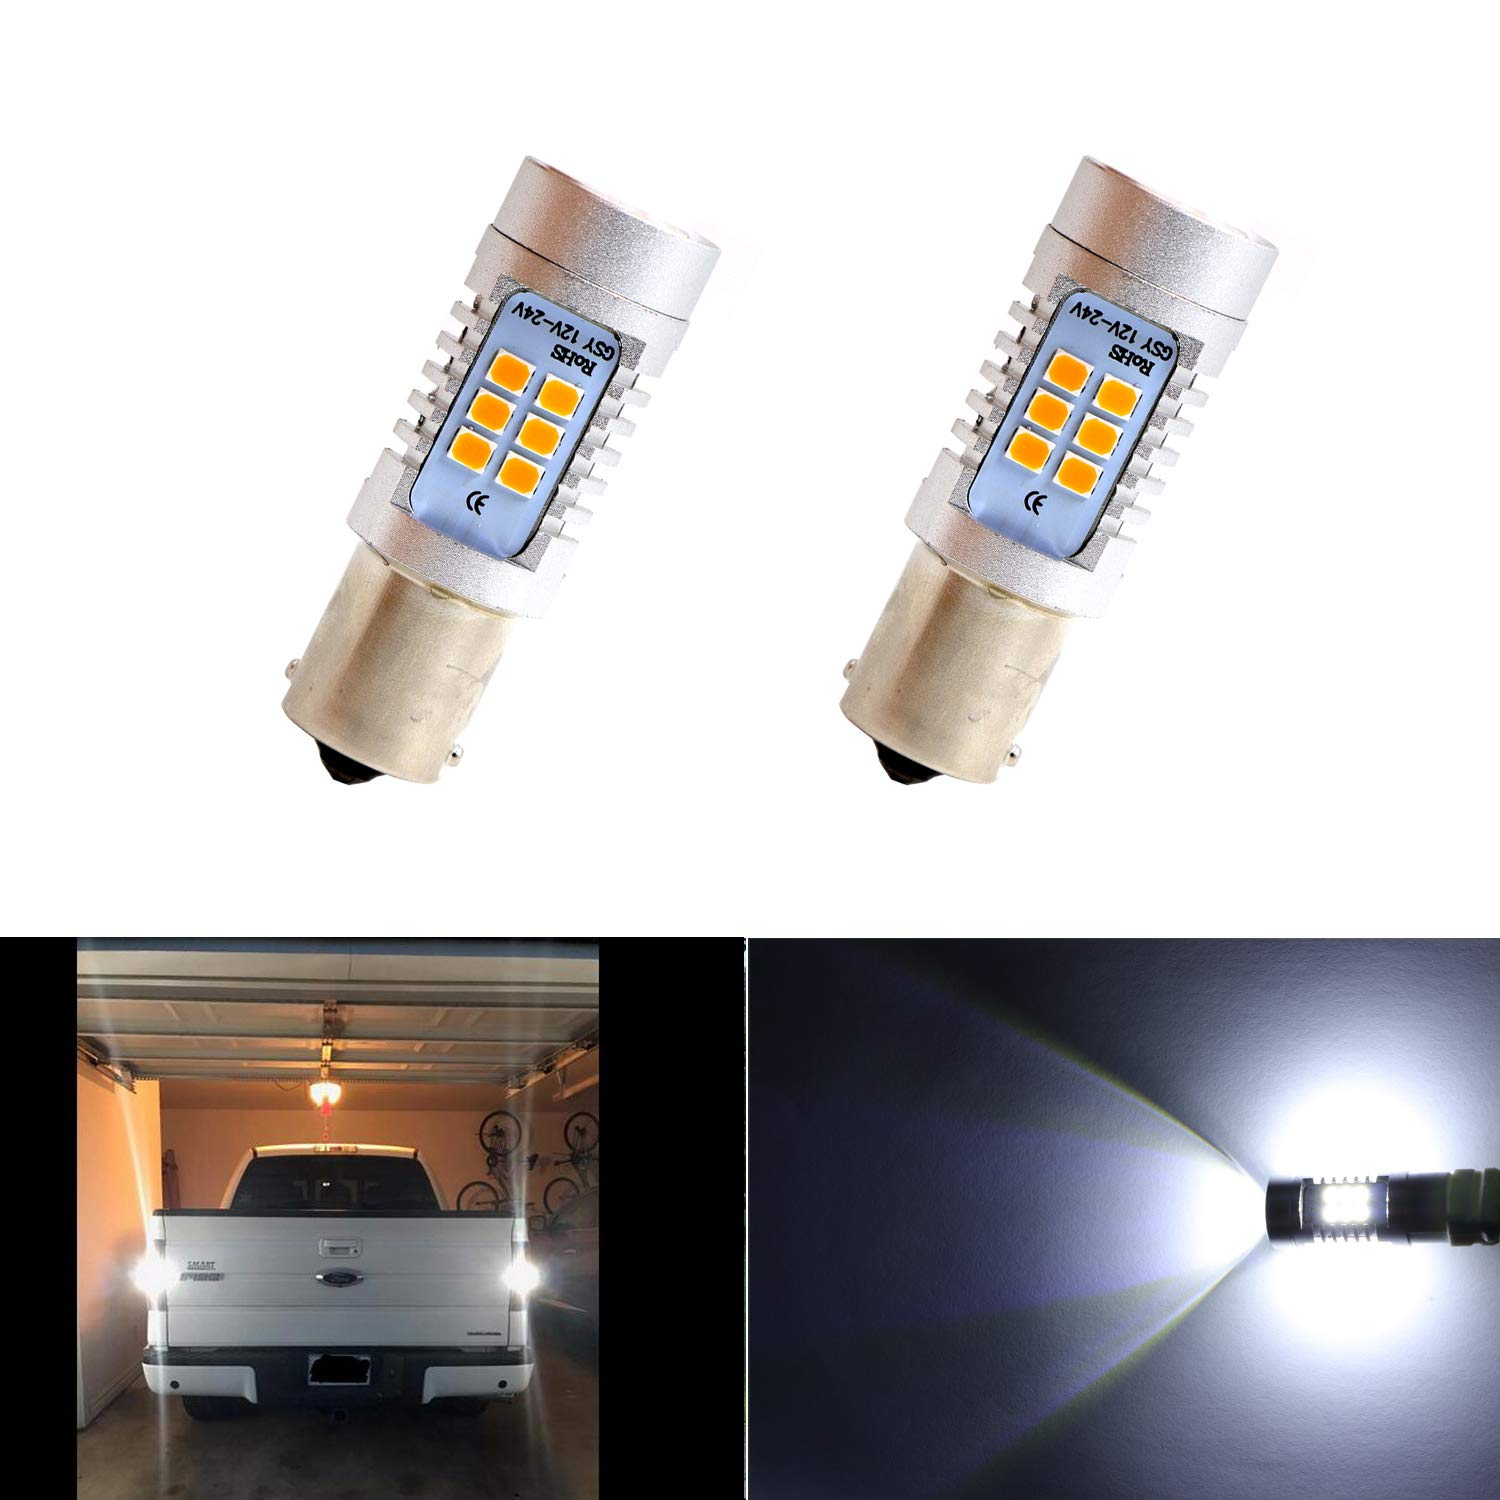 1156 Reversing Light LED Bulbs 12V P21W BA15S 33pcs 5630SMD LED Light Bulb for Backup Lights, Brake Lights, Signal Light, Headlight, Daytime Running Lights (Pack of 2) Yepwell